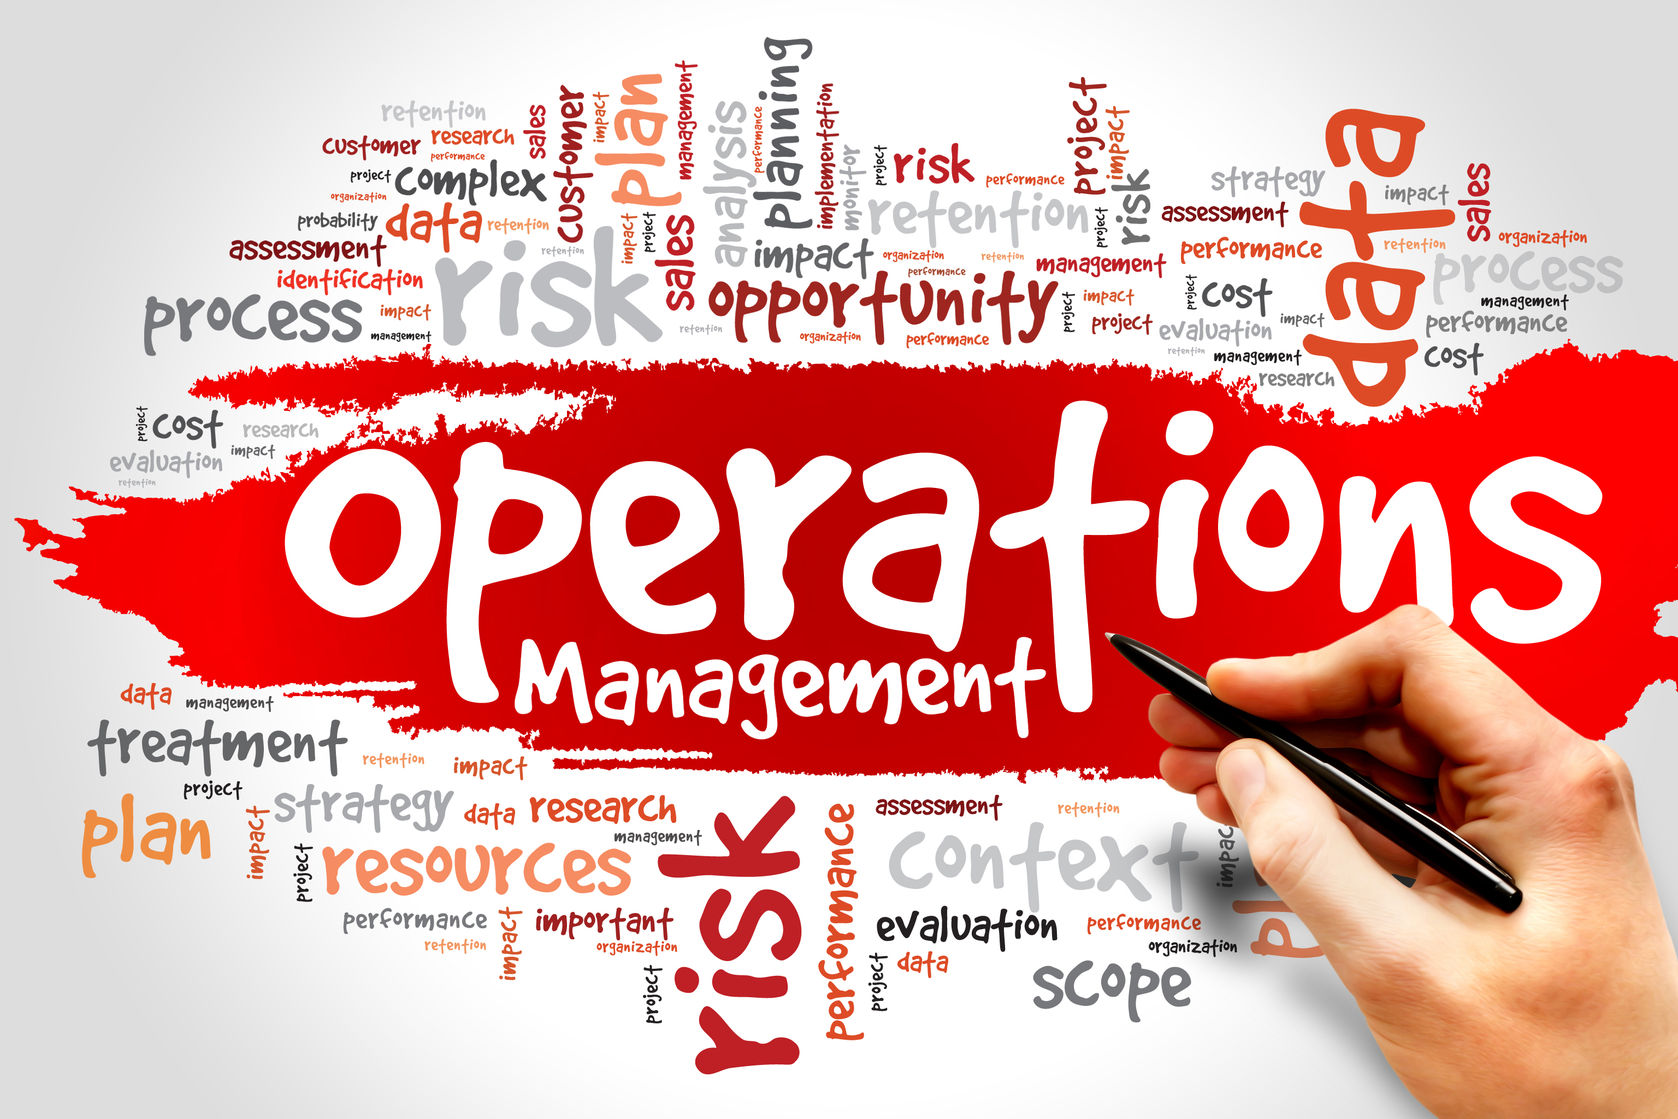 Operations management image